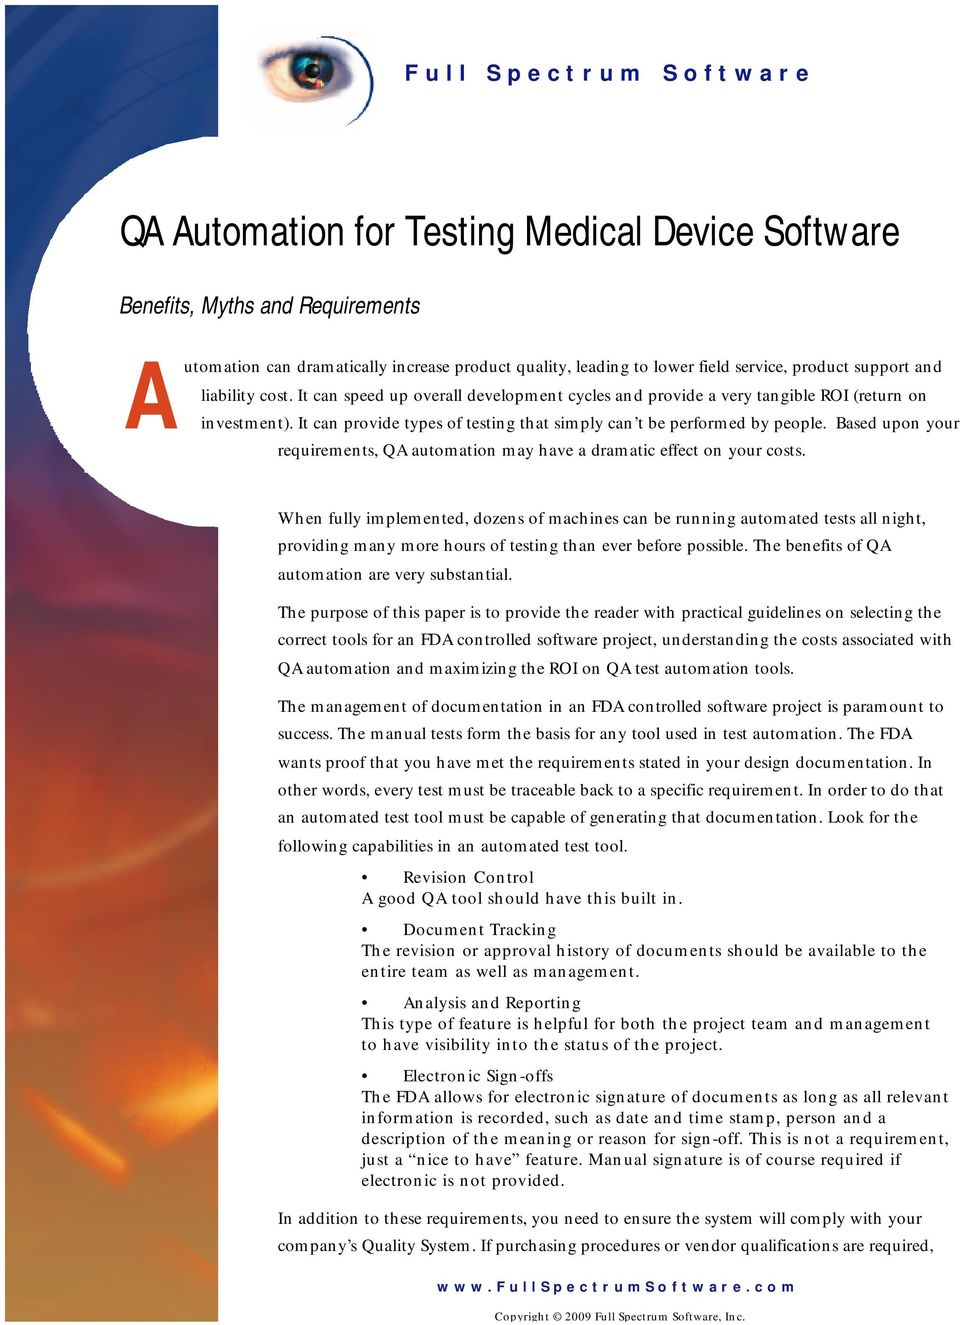 Based upon your requirements, QA automation may have a dramatic effect on your costs.